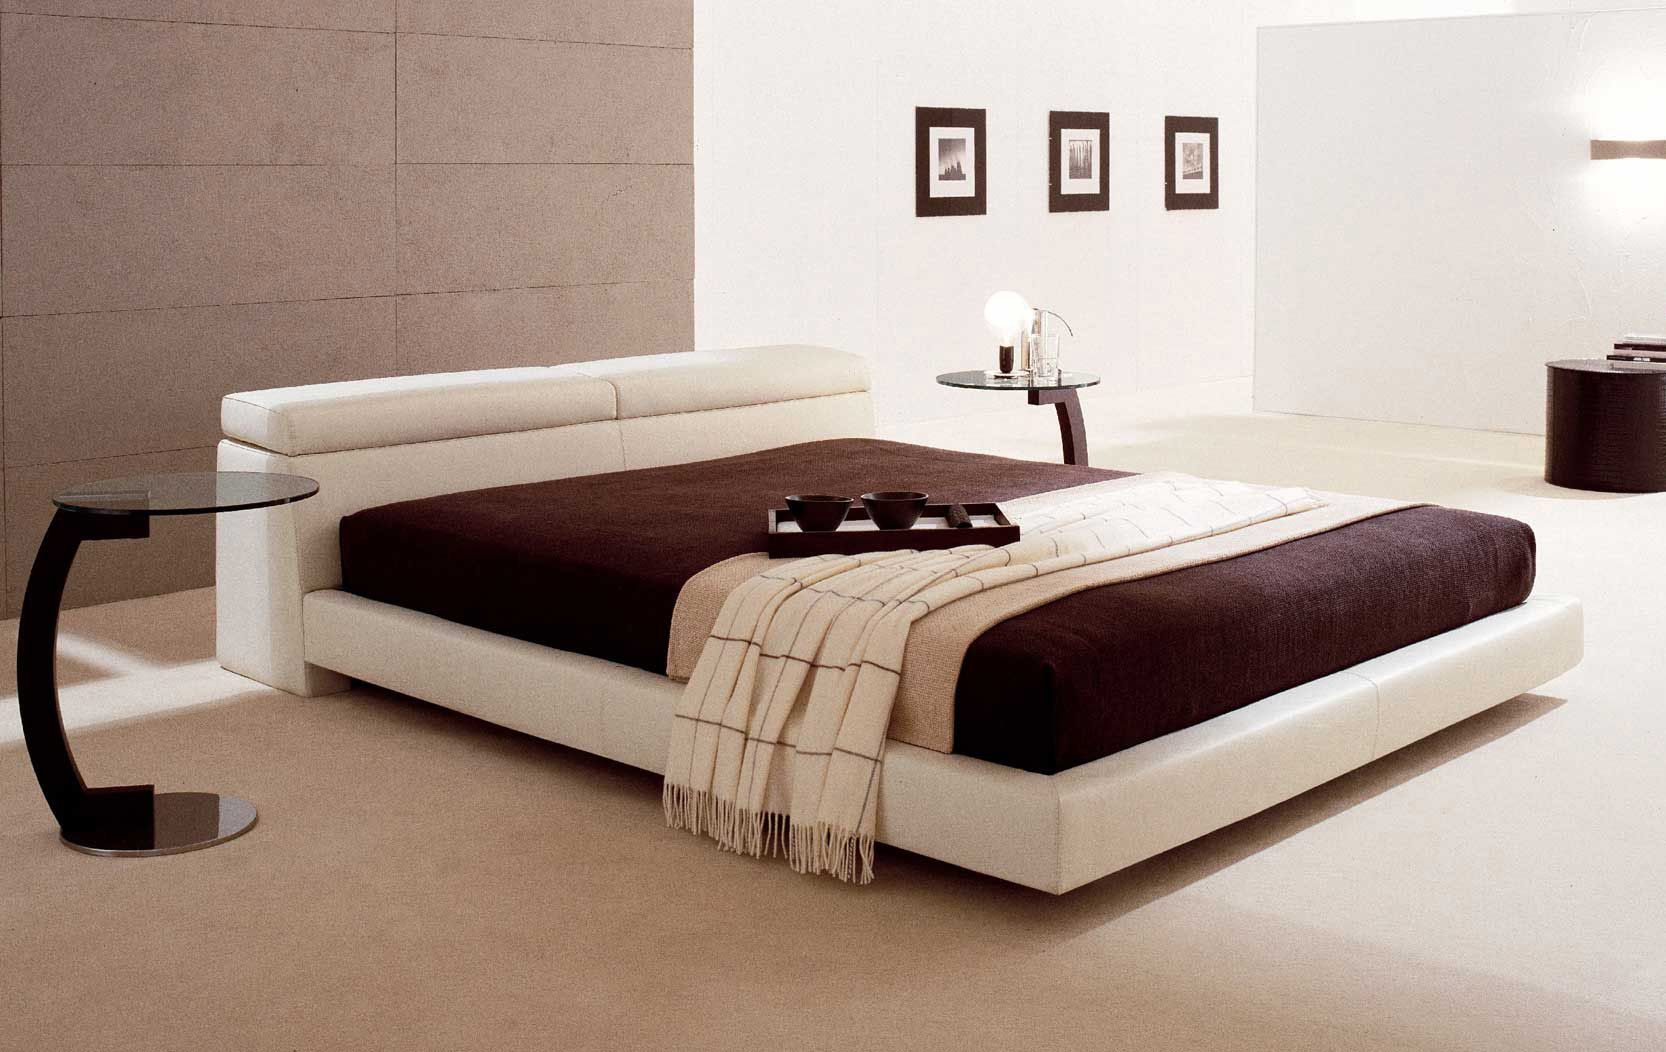 best bed design ideas images - mericamedia - mericamedia